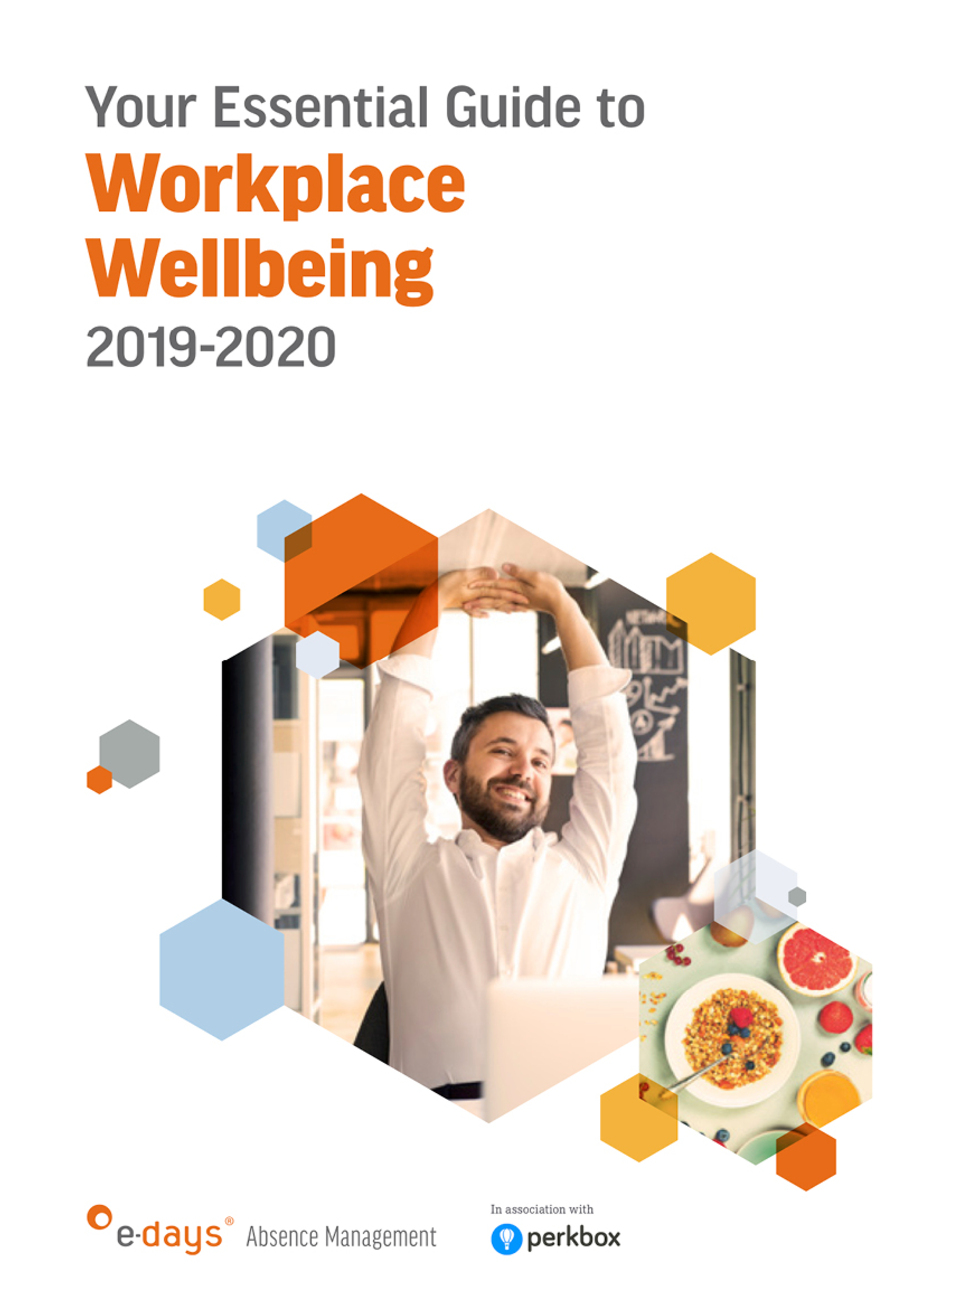 Your essential guide to workplace wellbeing